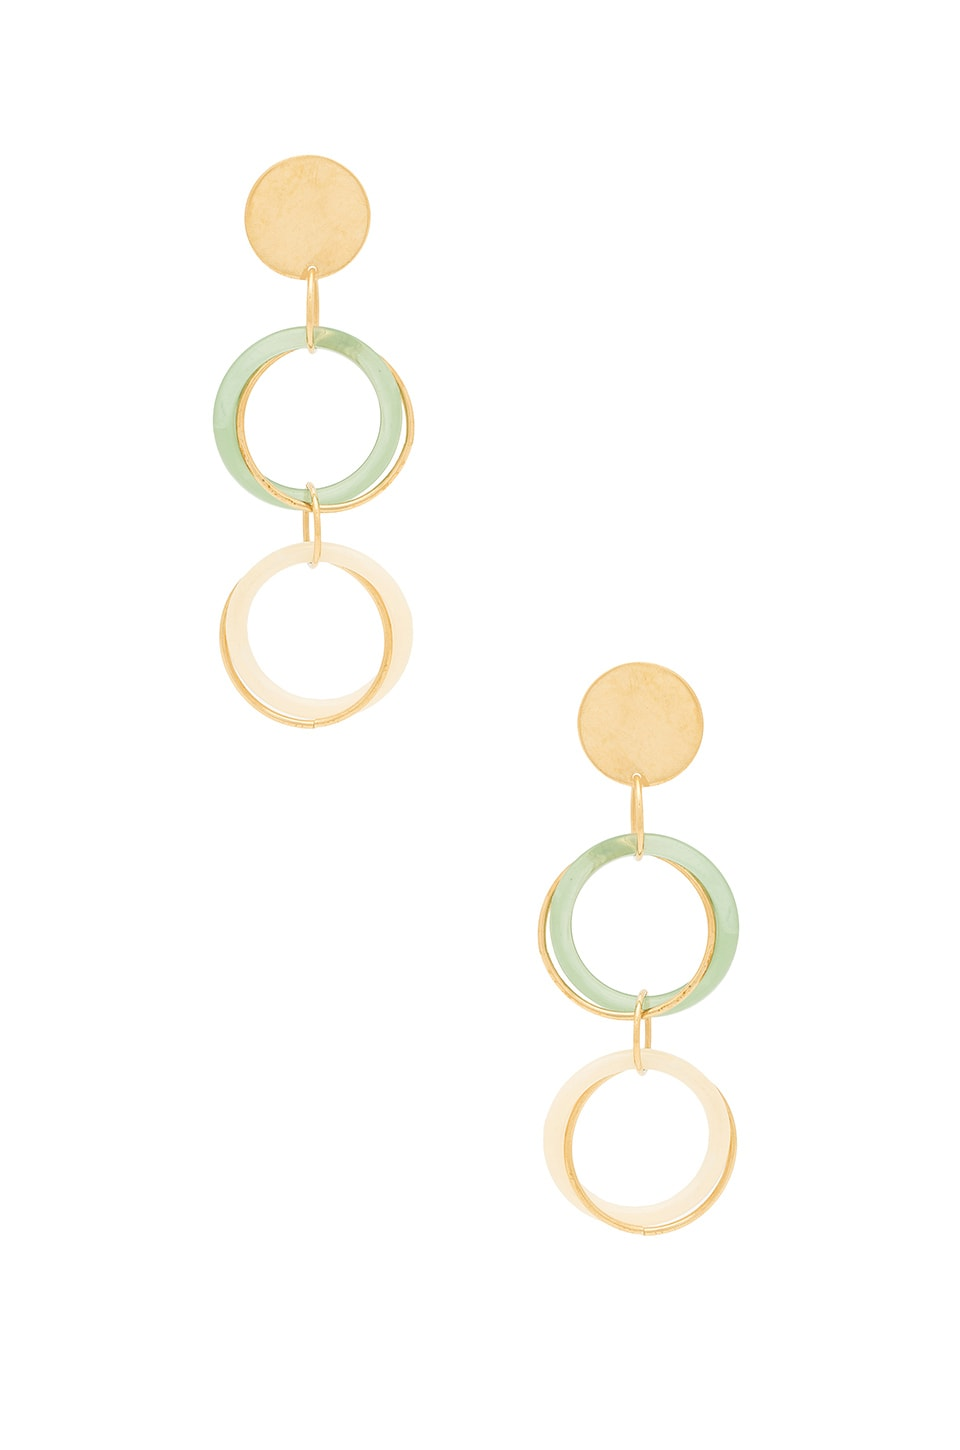 PARADIGM INTERLOCK EARRINGS